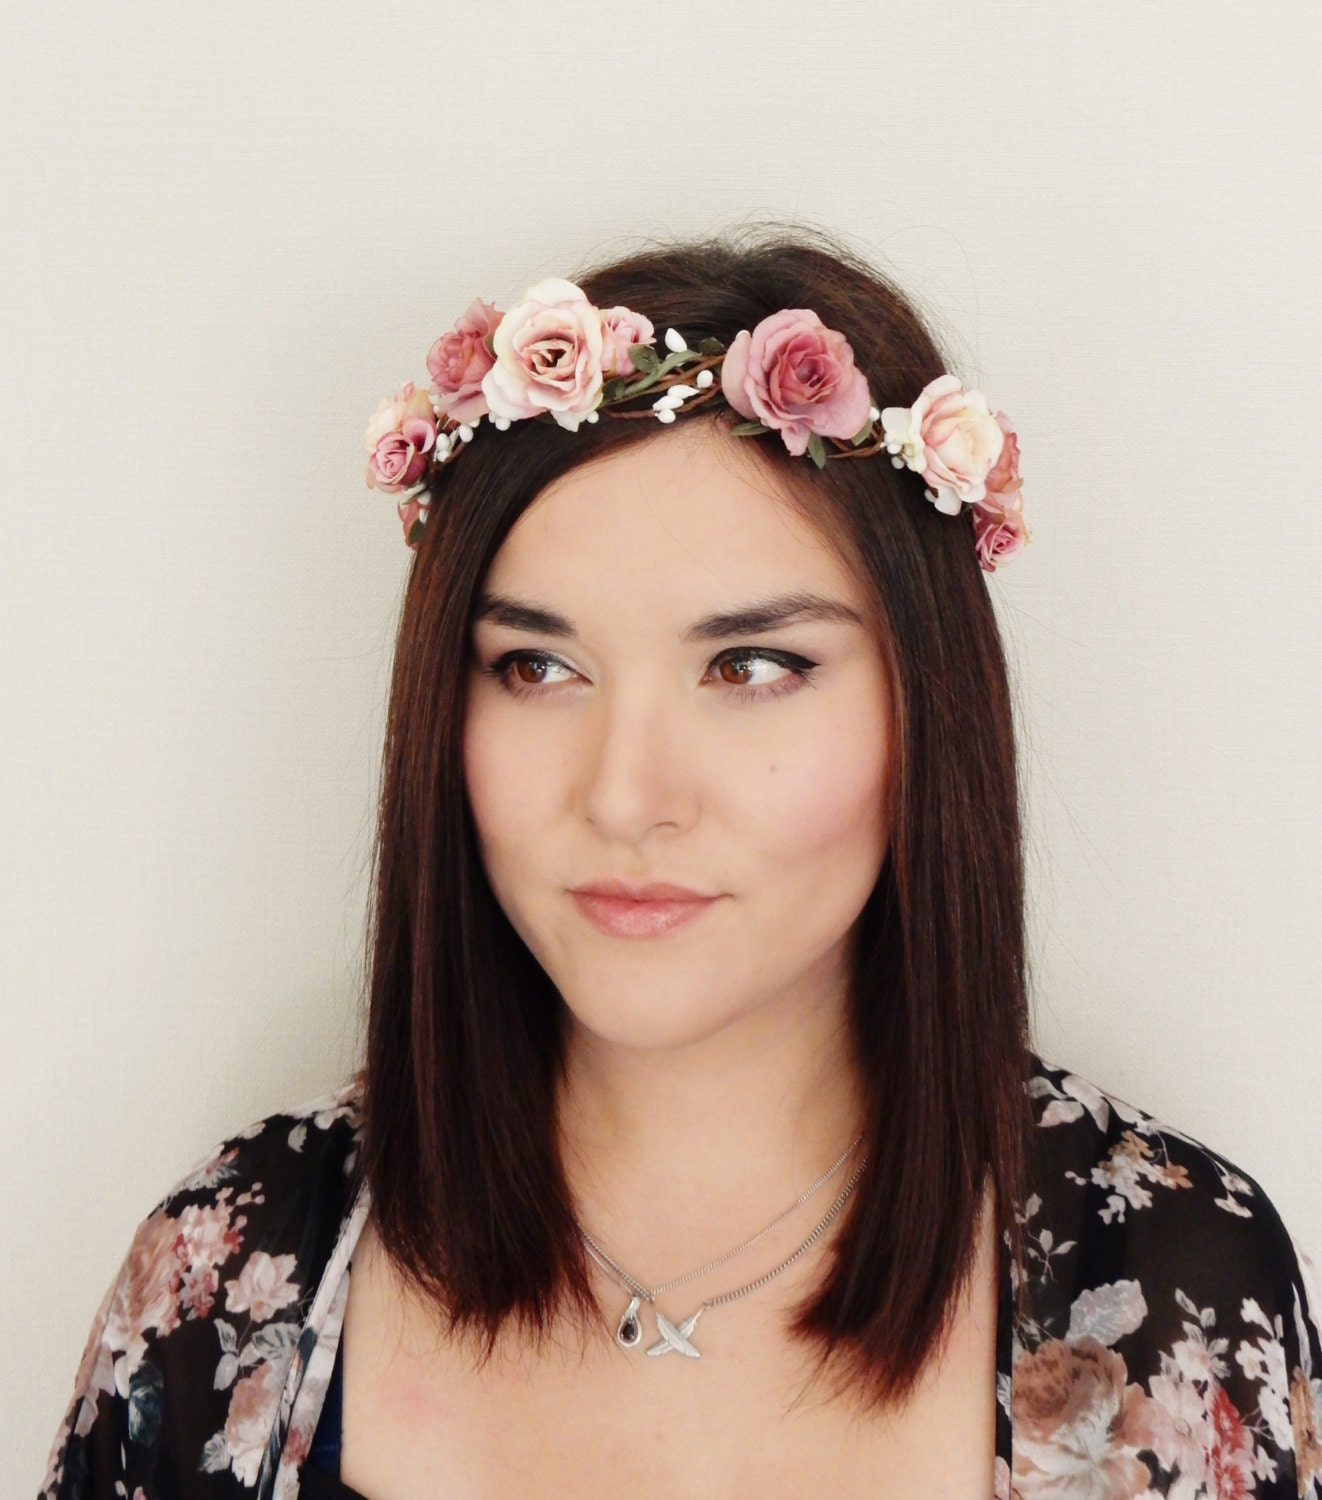 Pink Rose Flower Crown Floral Headband Floral Crown Flower